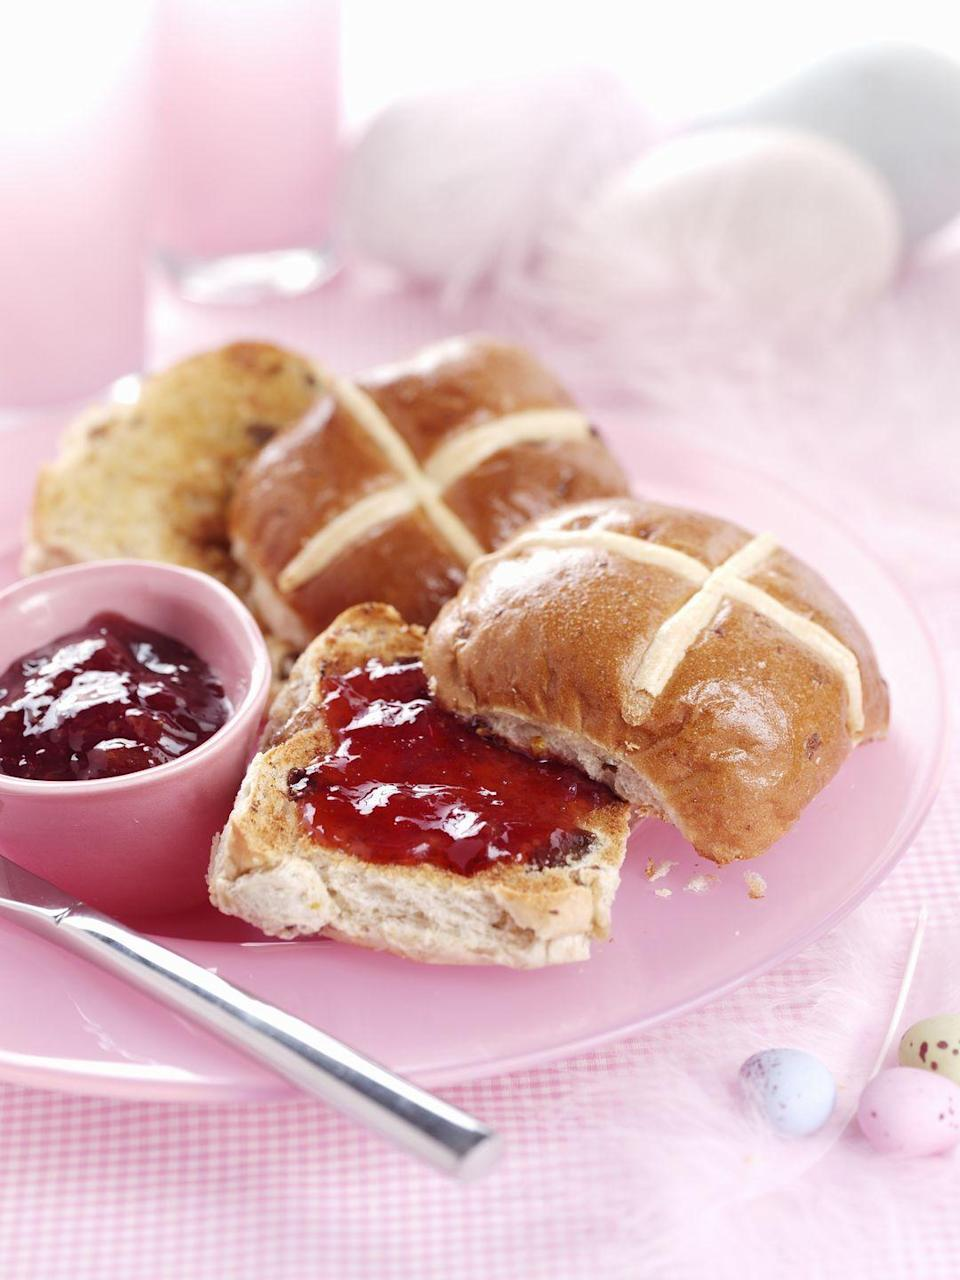 """<p>These Easter-famous breads trace back to ancient Egypt, Rome, and Greece, where they served as symbols of honor toward their goddesses, according to the <a href=""""https://app.ckbk.com/reference/food77337c08s001e120/hot-cross-buns"""" rel=""""nofollow noopener"""" target=""""_blank"""" data-ylk=""""slk:Oxford Companion to Food"""" class=""""link rapid-noclick-resp"""">Oxford Companion to Food</a>. Later, these sweet breads became popular at Easter, especially in England where bakers were forbidden to sell <a href=""""https://www.goodhousekeeping.com/food-recipes/cooking/g4955/how-to-make-banana-bread/"""" rel=""""nofollow noopener"""" target=""""_blank"""" data-ylk=""""slk:spice breads"""" class=""""link rapid-noclick-resp"""">spice breads</a> except on special holidays, like the Friday before Easter.</p><p>Many English believed hot cross buns baked on Good Friday would never grow moldy; they were kept as good luck charms hanging in windows, accompanied sailors on a voyage, or buried in piles of grain to ward off rodents. Today, they're <a href=""""https://www.thekitchn.com/heres-why-we-eat-hot-cross-buns-at-easter-holiday-traditions-at-the-kitchn-217463"""" rel=""""nofollow noopener"""" target=""""_blank"""" data-ylk=""""slk:mostly representations of the Christian symbol of the cross"""" class=""""link rapid-noclick-resp"""">mostly representations of the Christian symbol of the cross</a>, as well as a sweet, buttery addition to an elegant Easter meal.</p>"""